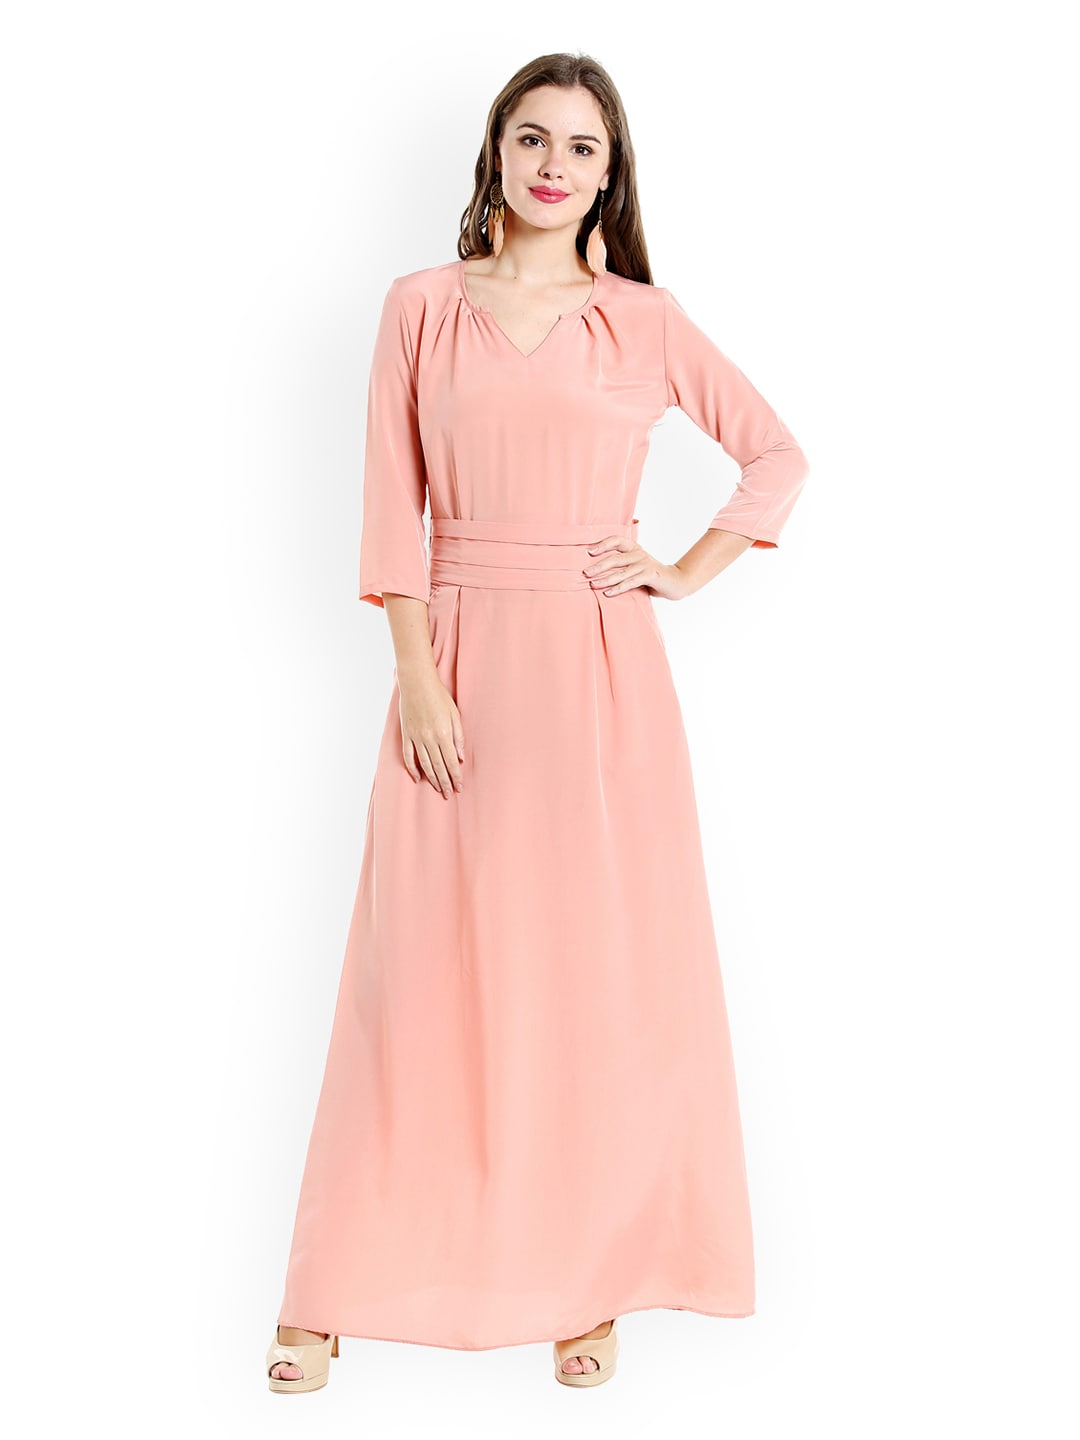 5cba1a56f97 Long Dresses - Buy Maxi Dresses for Women Online in India - Upto 70% OFF